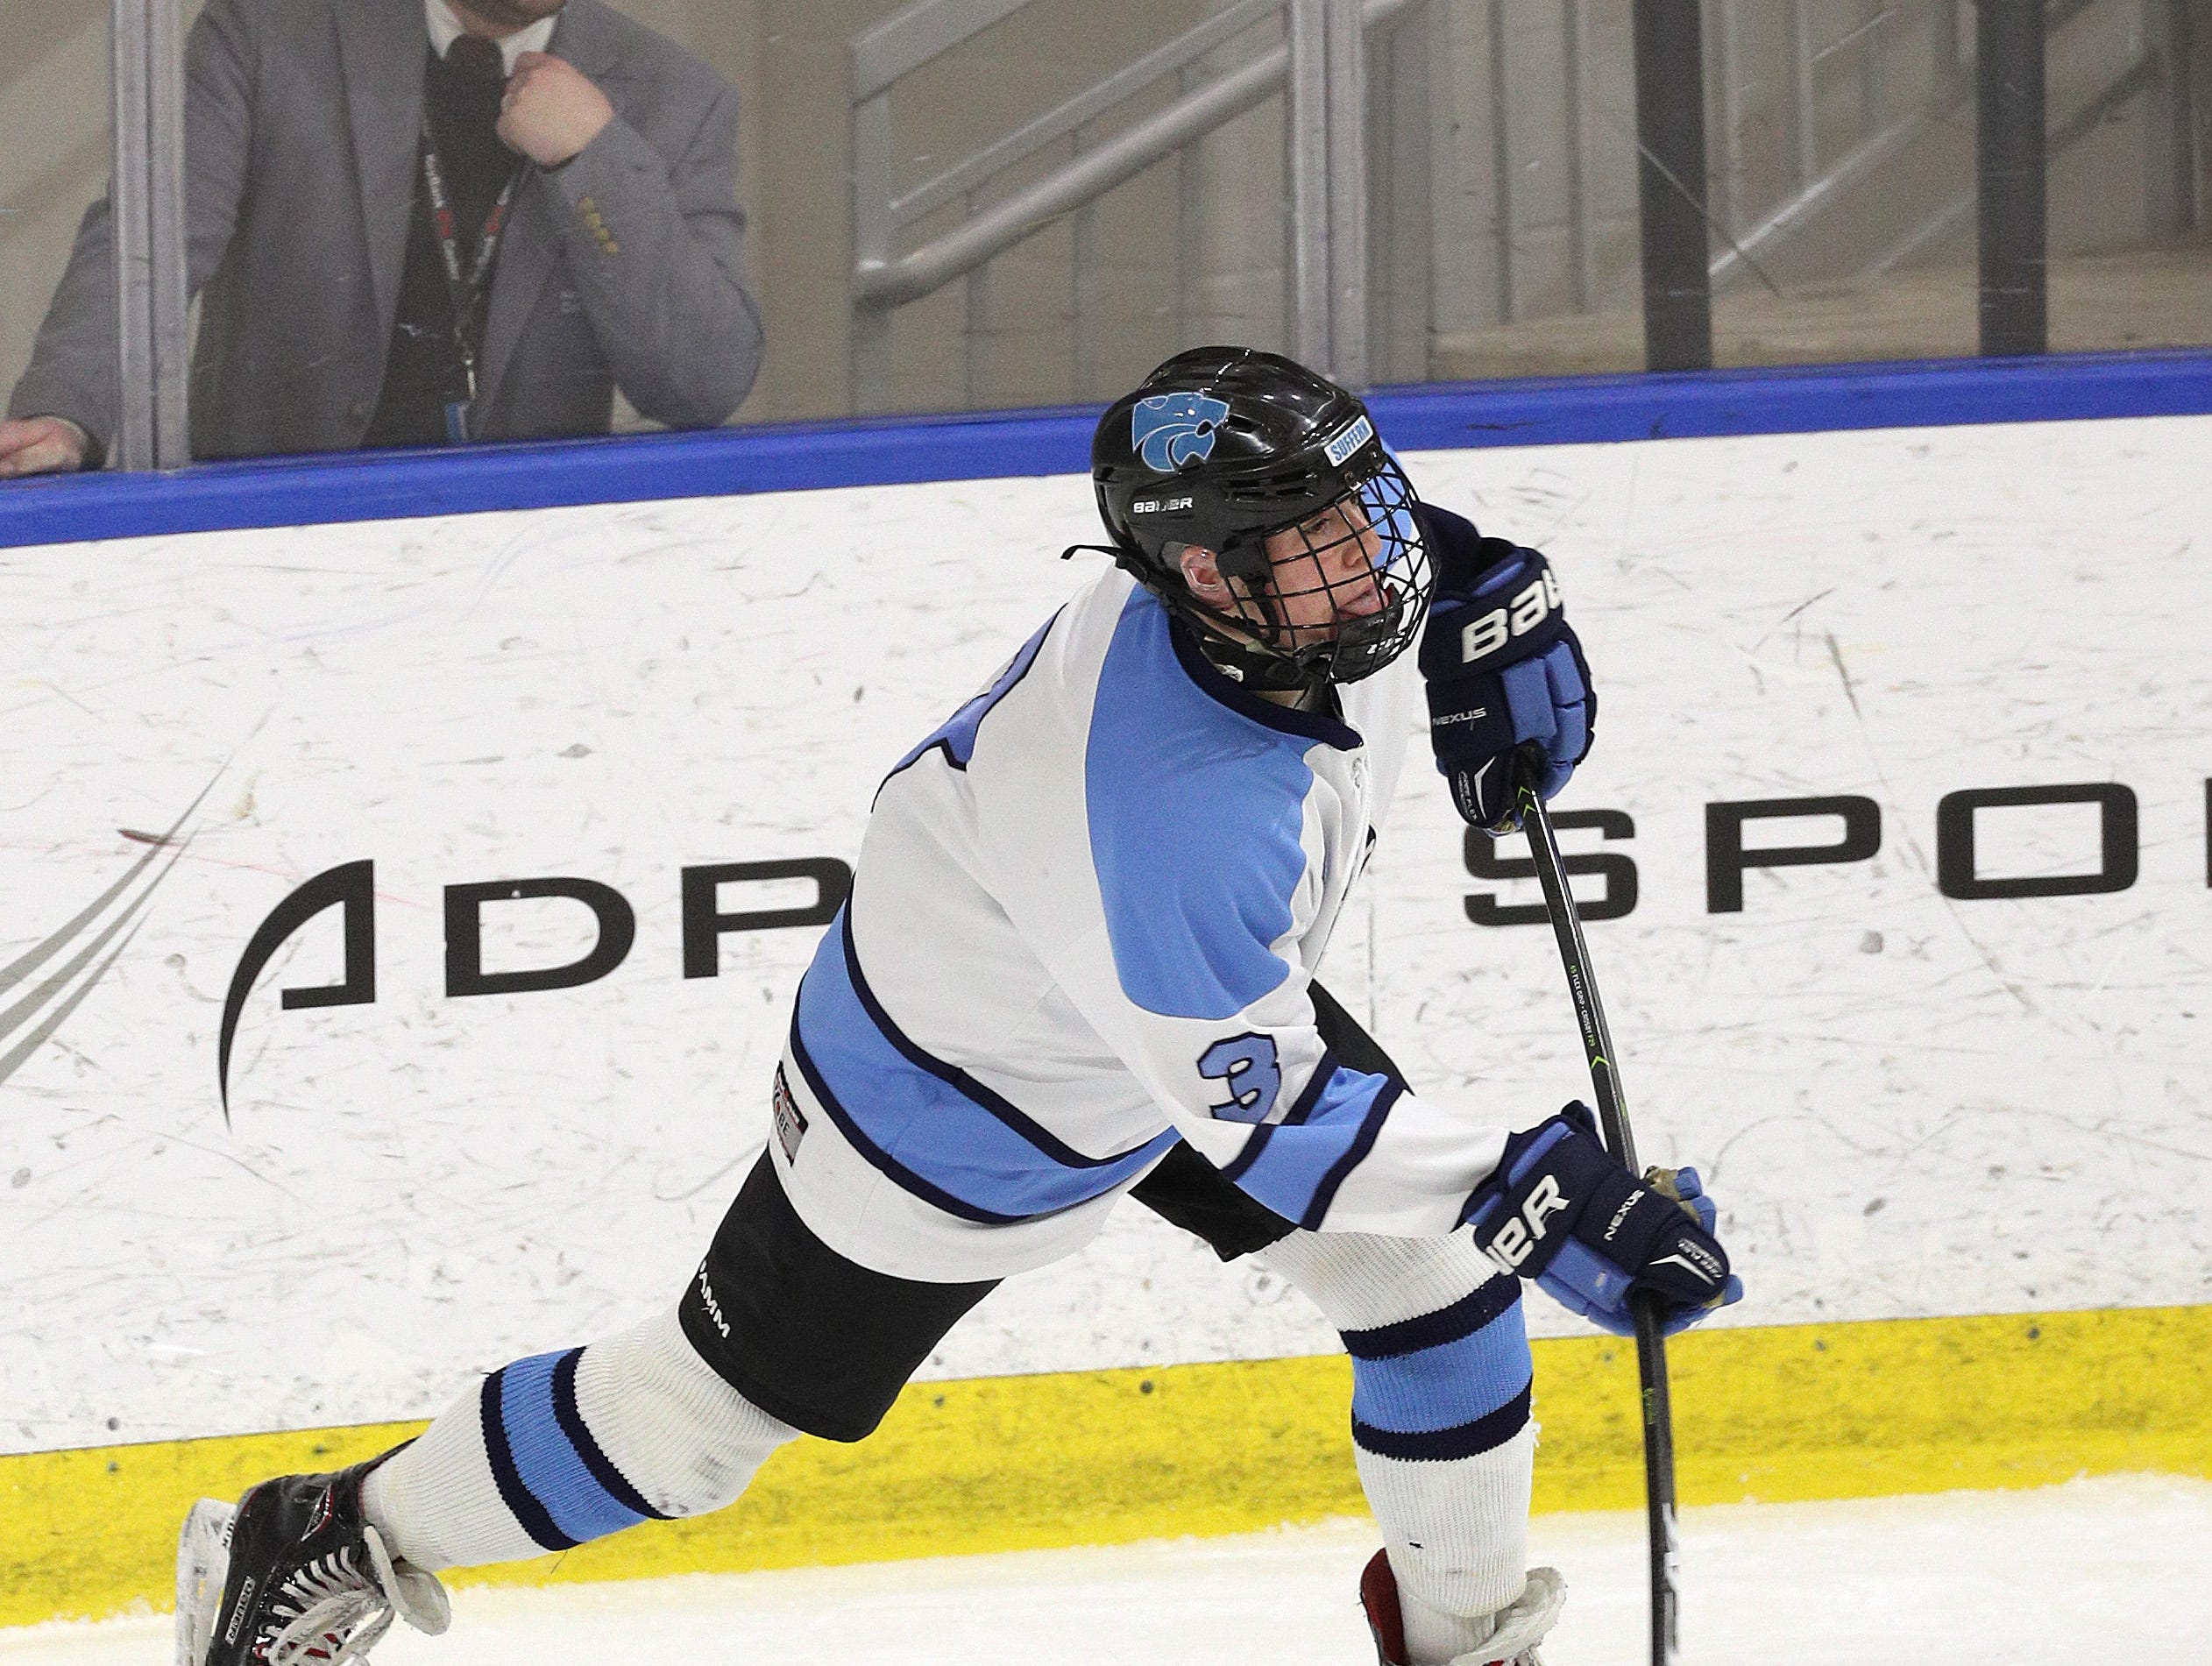 Suffern's Jared Marter gets off a wrist shot against Syracuse.